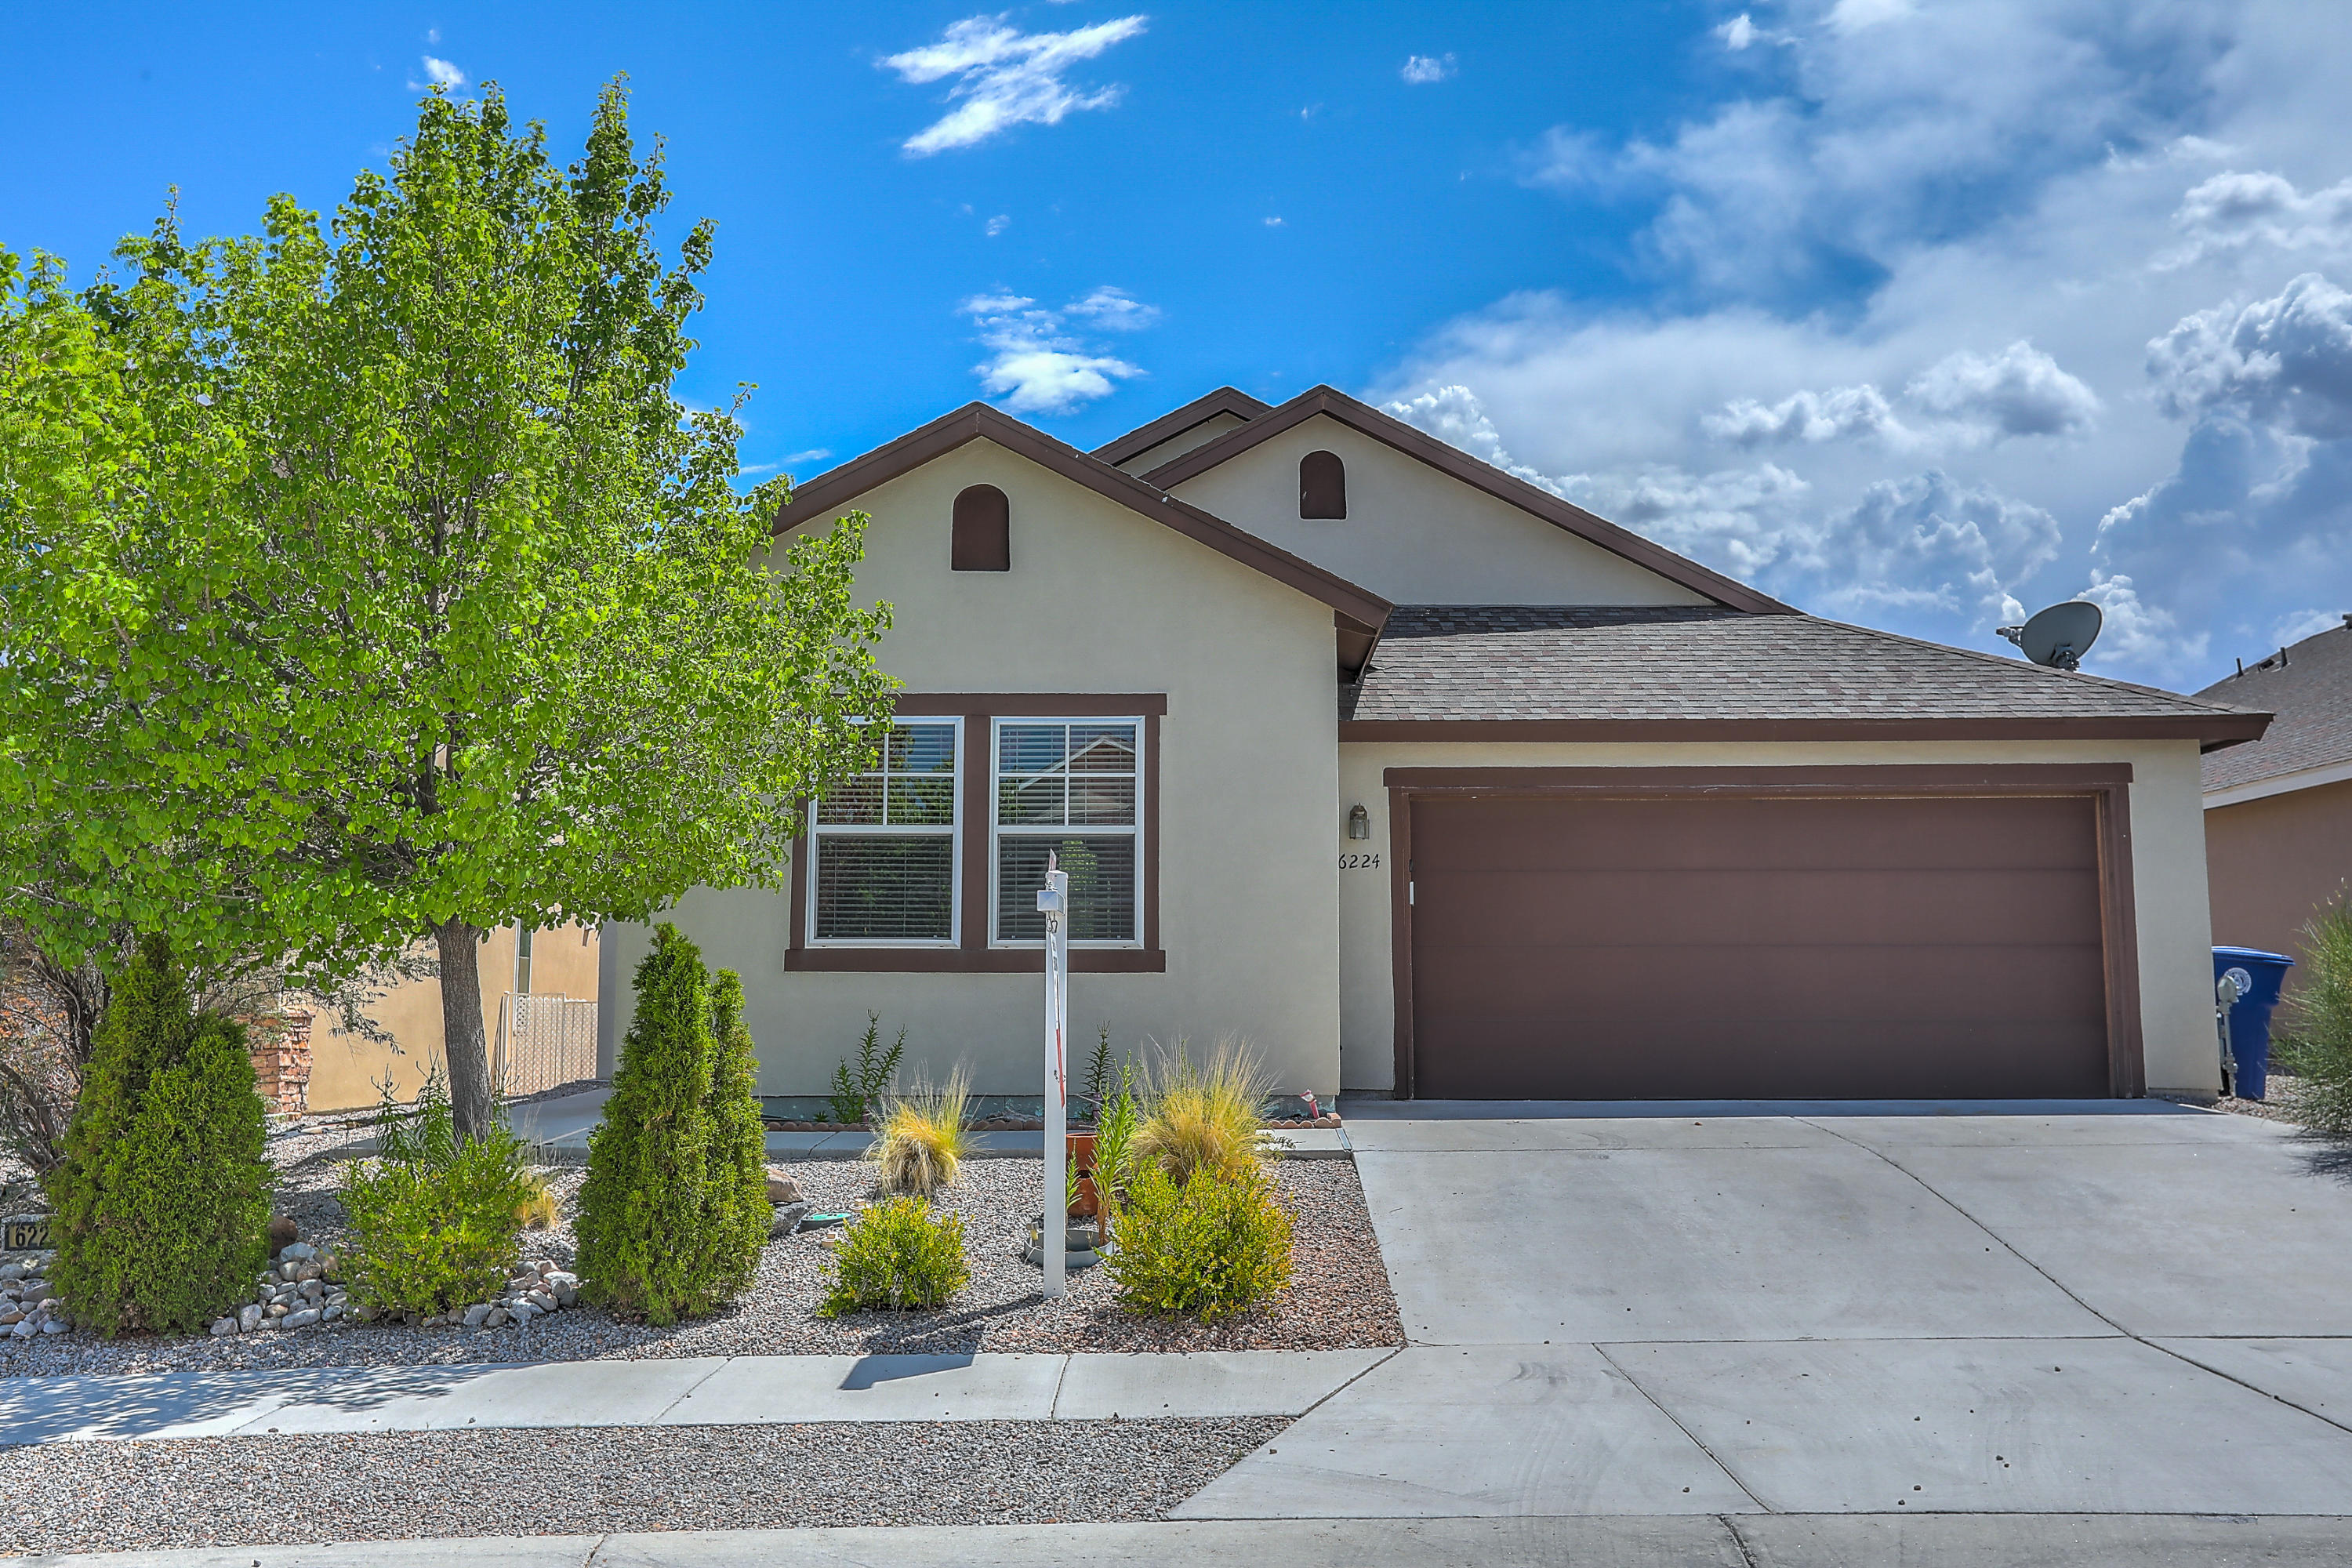 Northwest Albuquerque and Northwest Heights Homes for Sale -  Spa,  6224 NW Corte Alzira